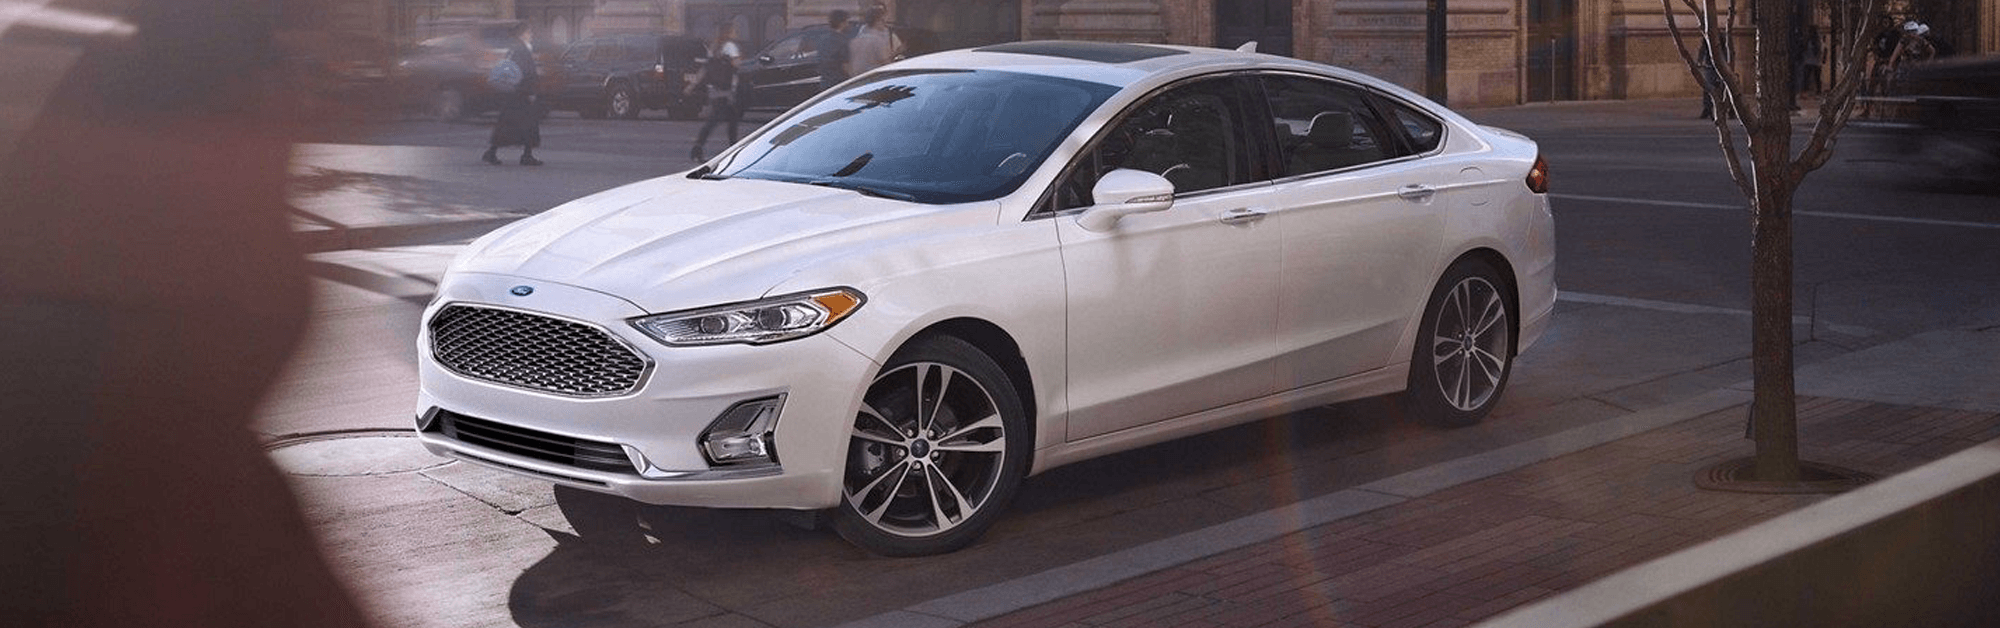 Ford Fusion For Sale Near Me >> 2019 Ford Fusion Moon Township Ford Ford Dealer Pittsburgh